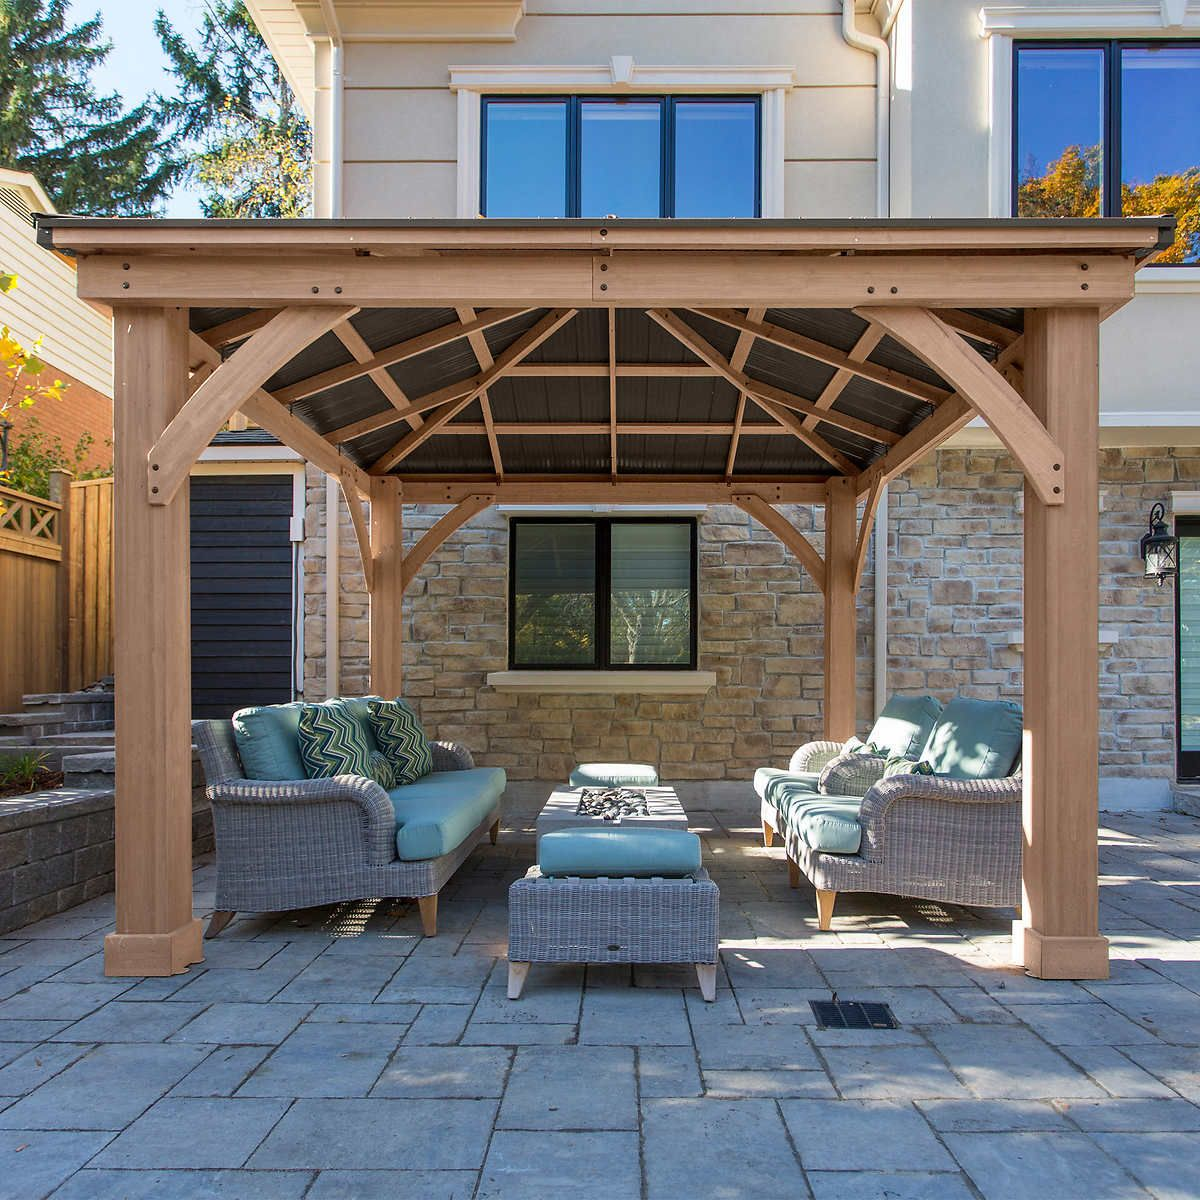 12 X 12 Cedar Gazebo With Aluminum Roof In 2020 Outdoor Pavillion Patio Outdoor Pergola